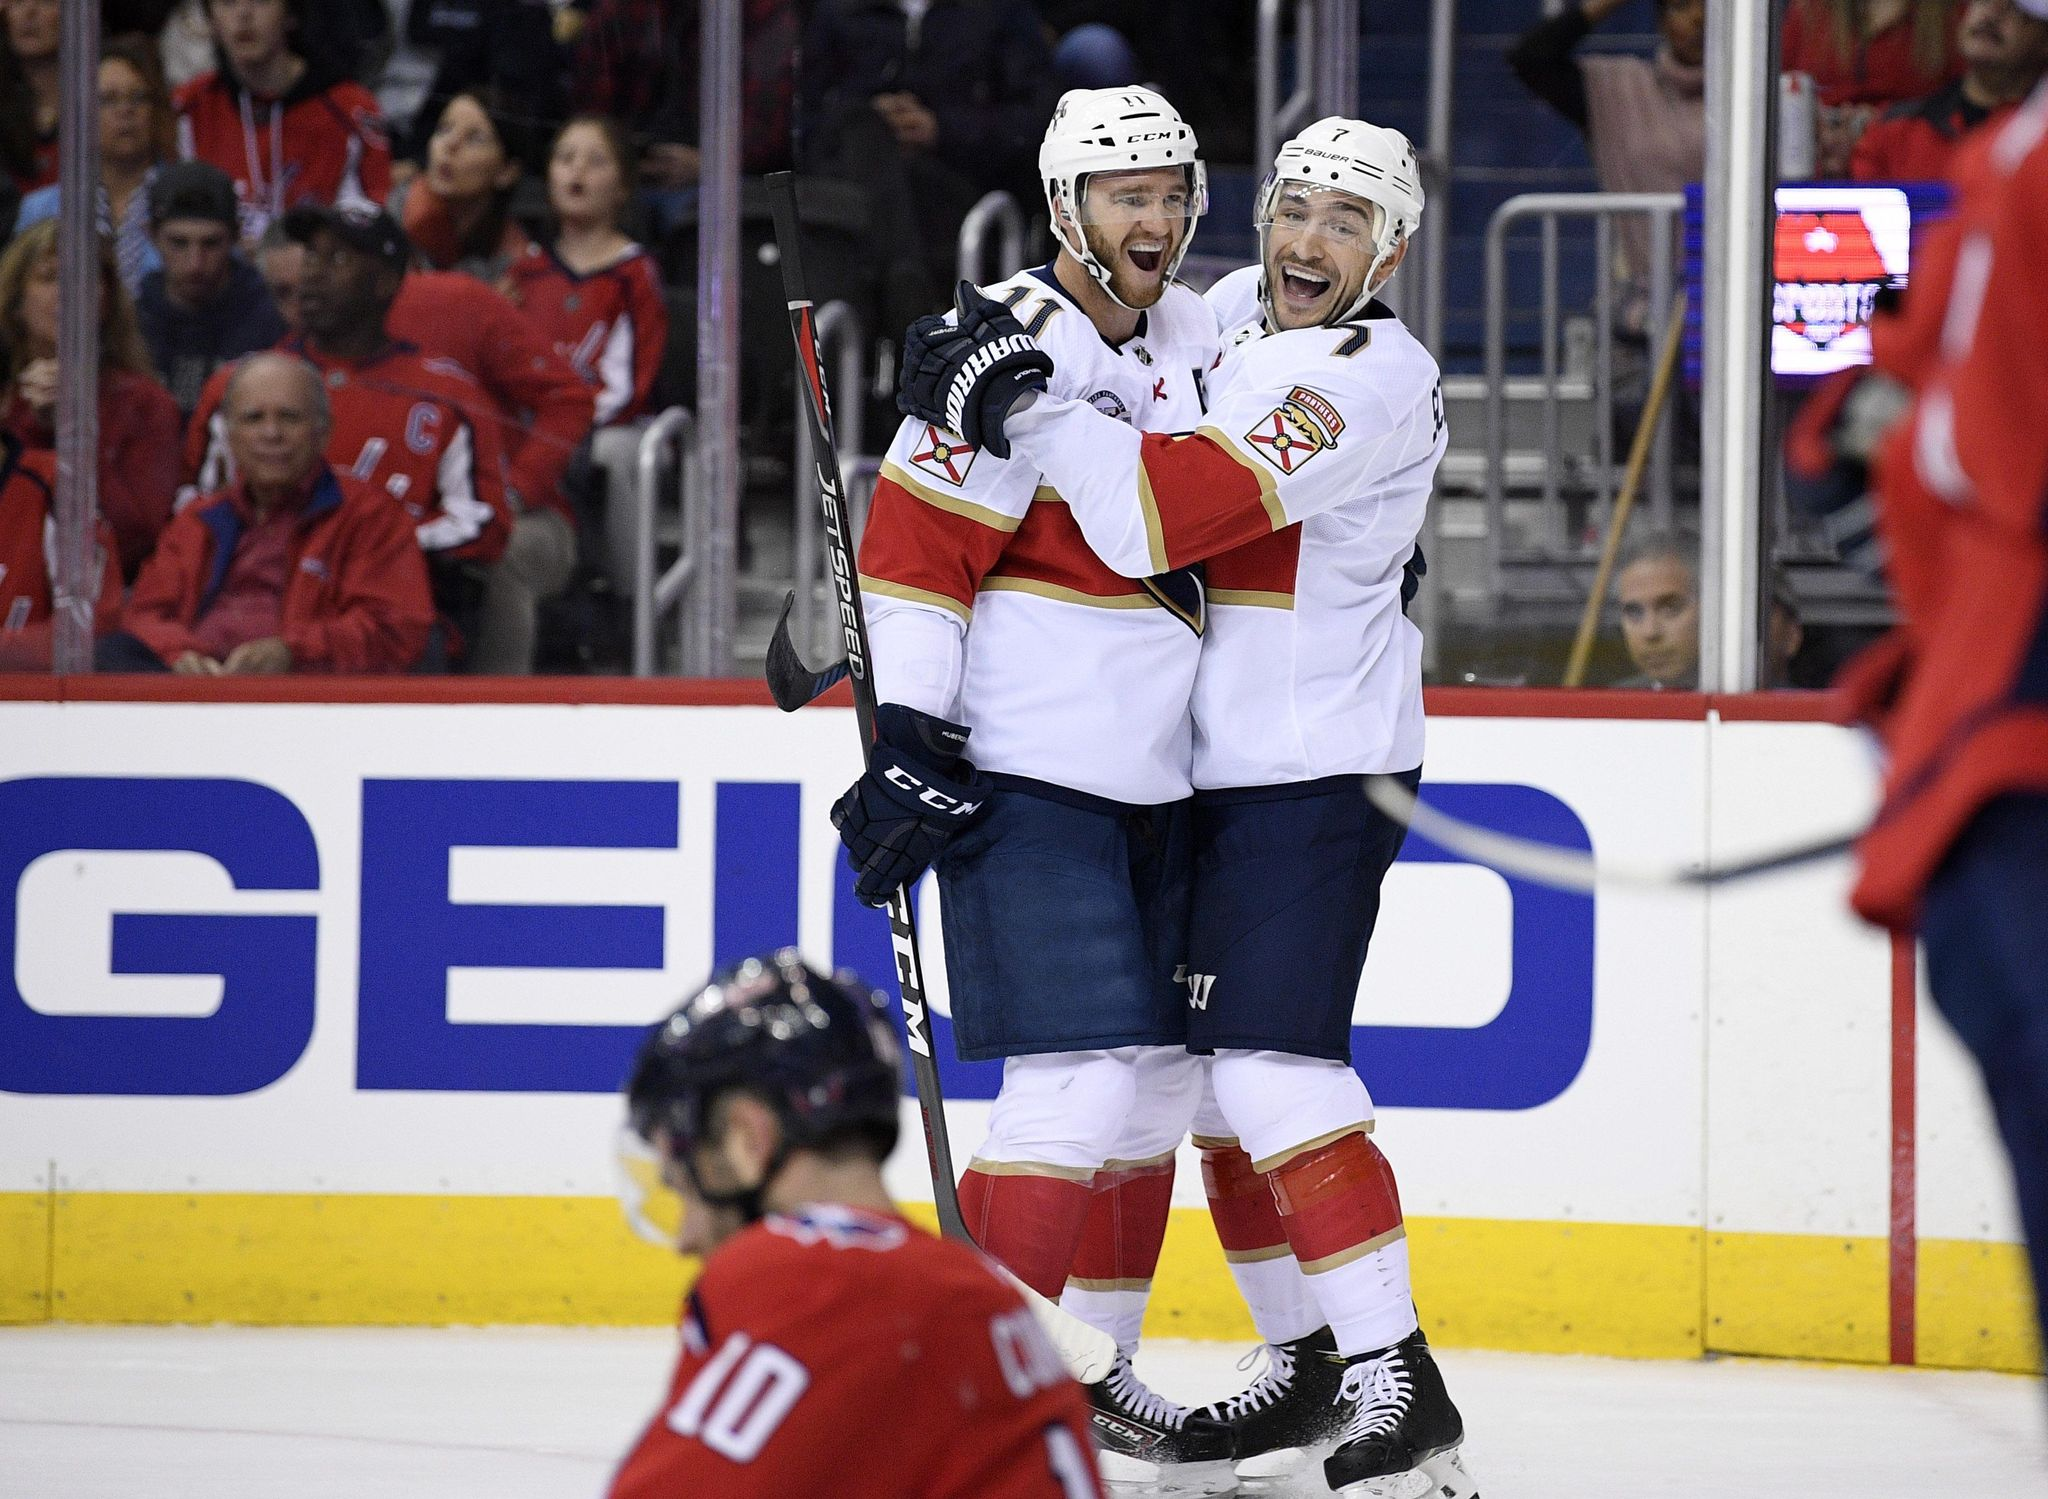 Panthers_capitals_hockey_49123_s2048x1499